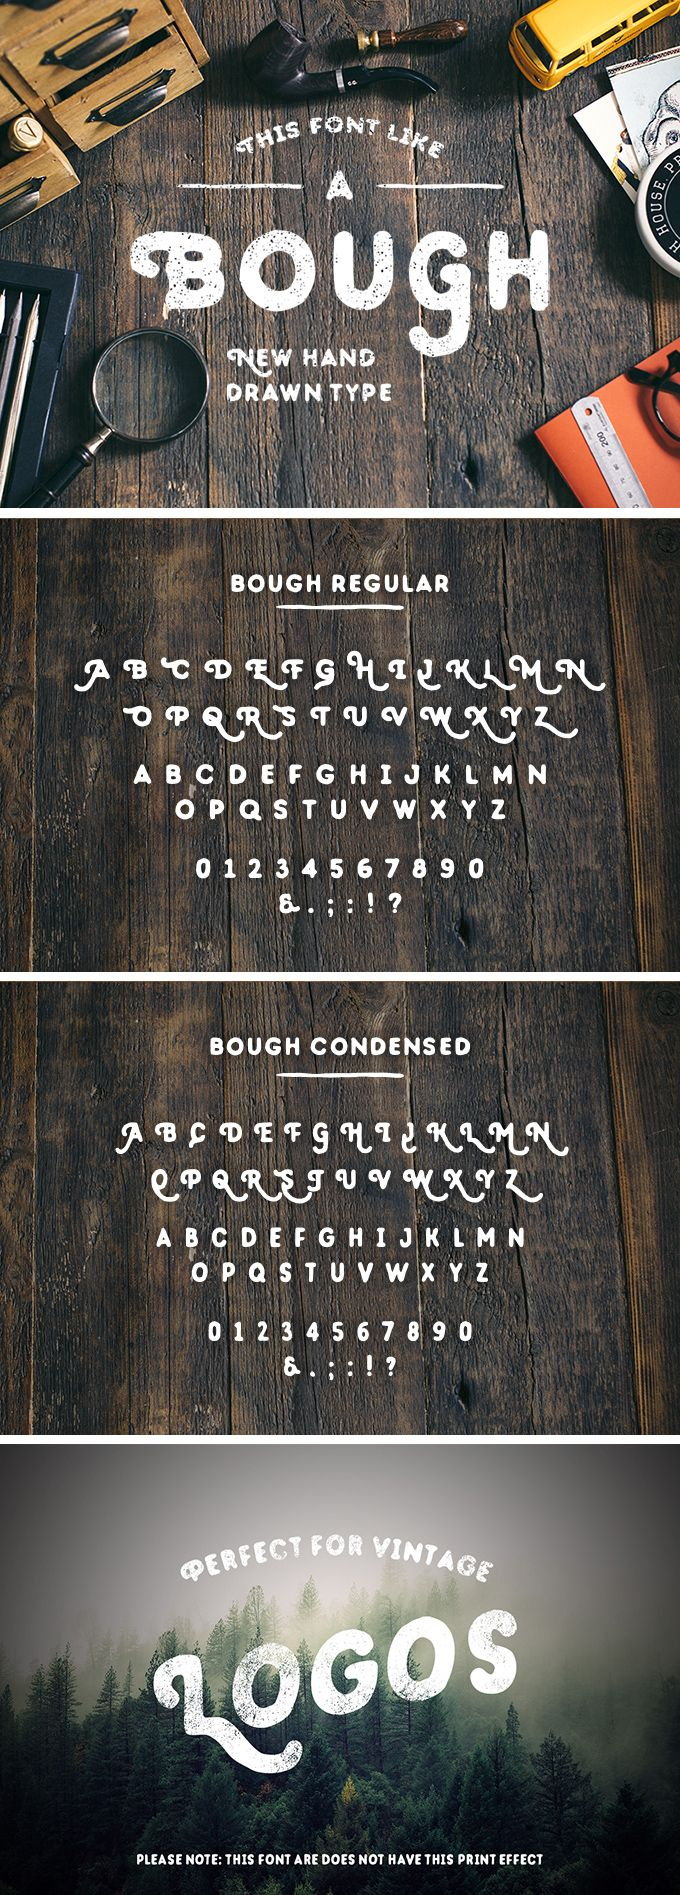 Bough: Hand-Drawn Typeface  Bough is a hand-drawn typeface featuring vintage aesthetics. It goes in two characters: regular and condensed. Each letter has an alternate glyph. Also, some glyphs a different in both characters. You can combine the characters to get an elegant vintage look.  We thank Pavel Korzhenko for providing us with this wonderful freebie!